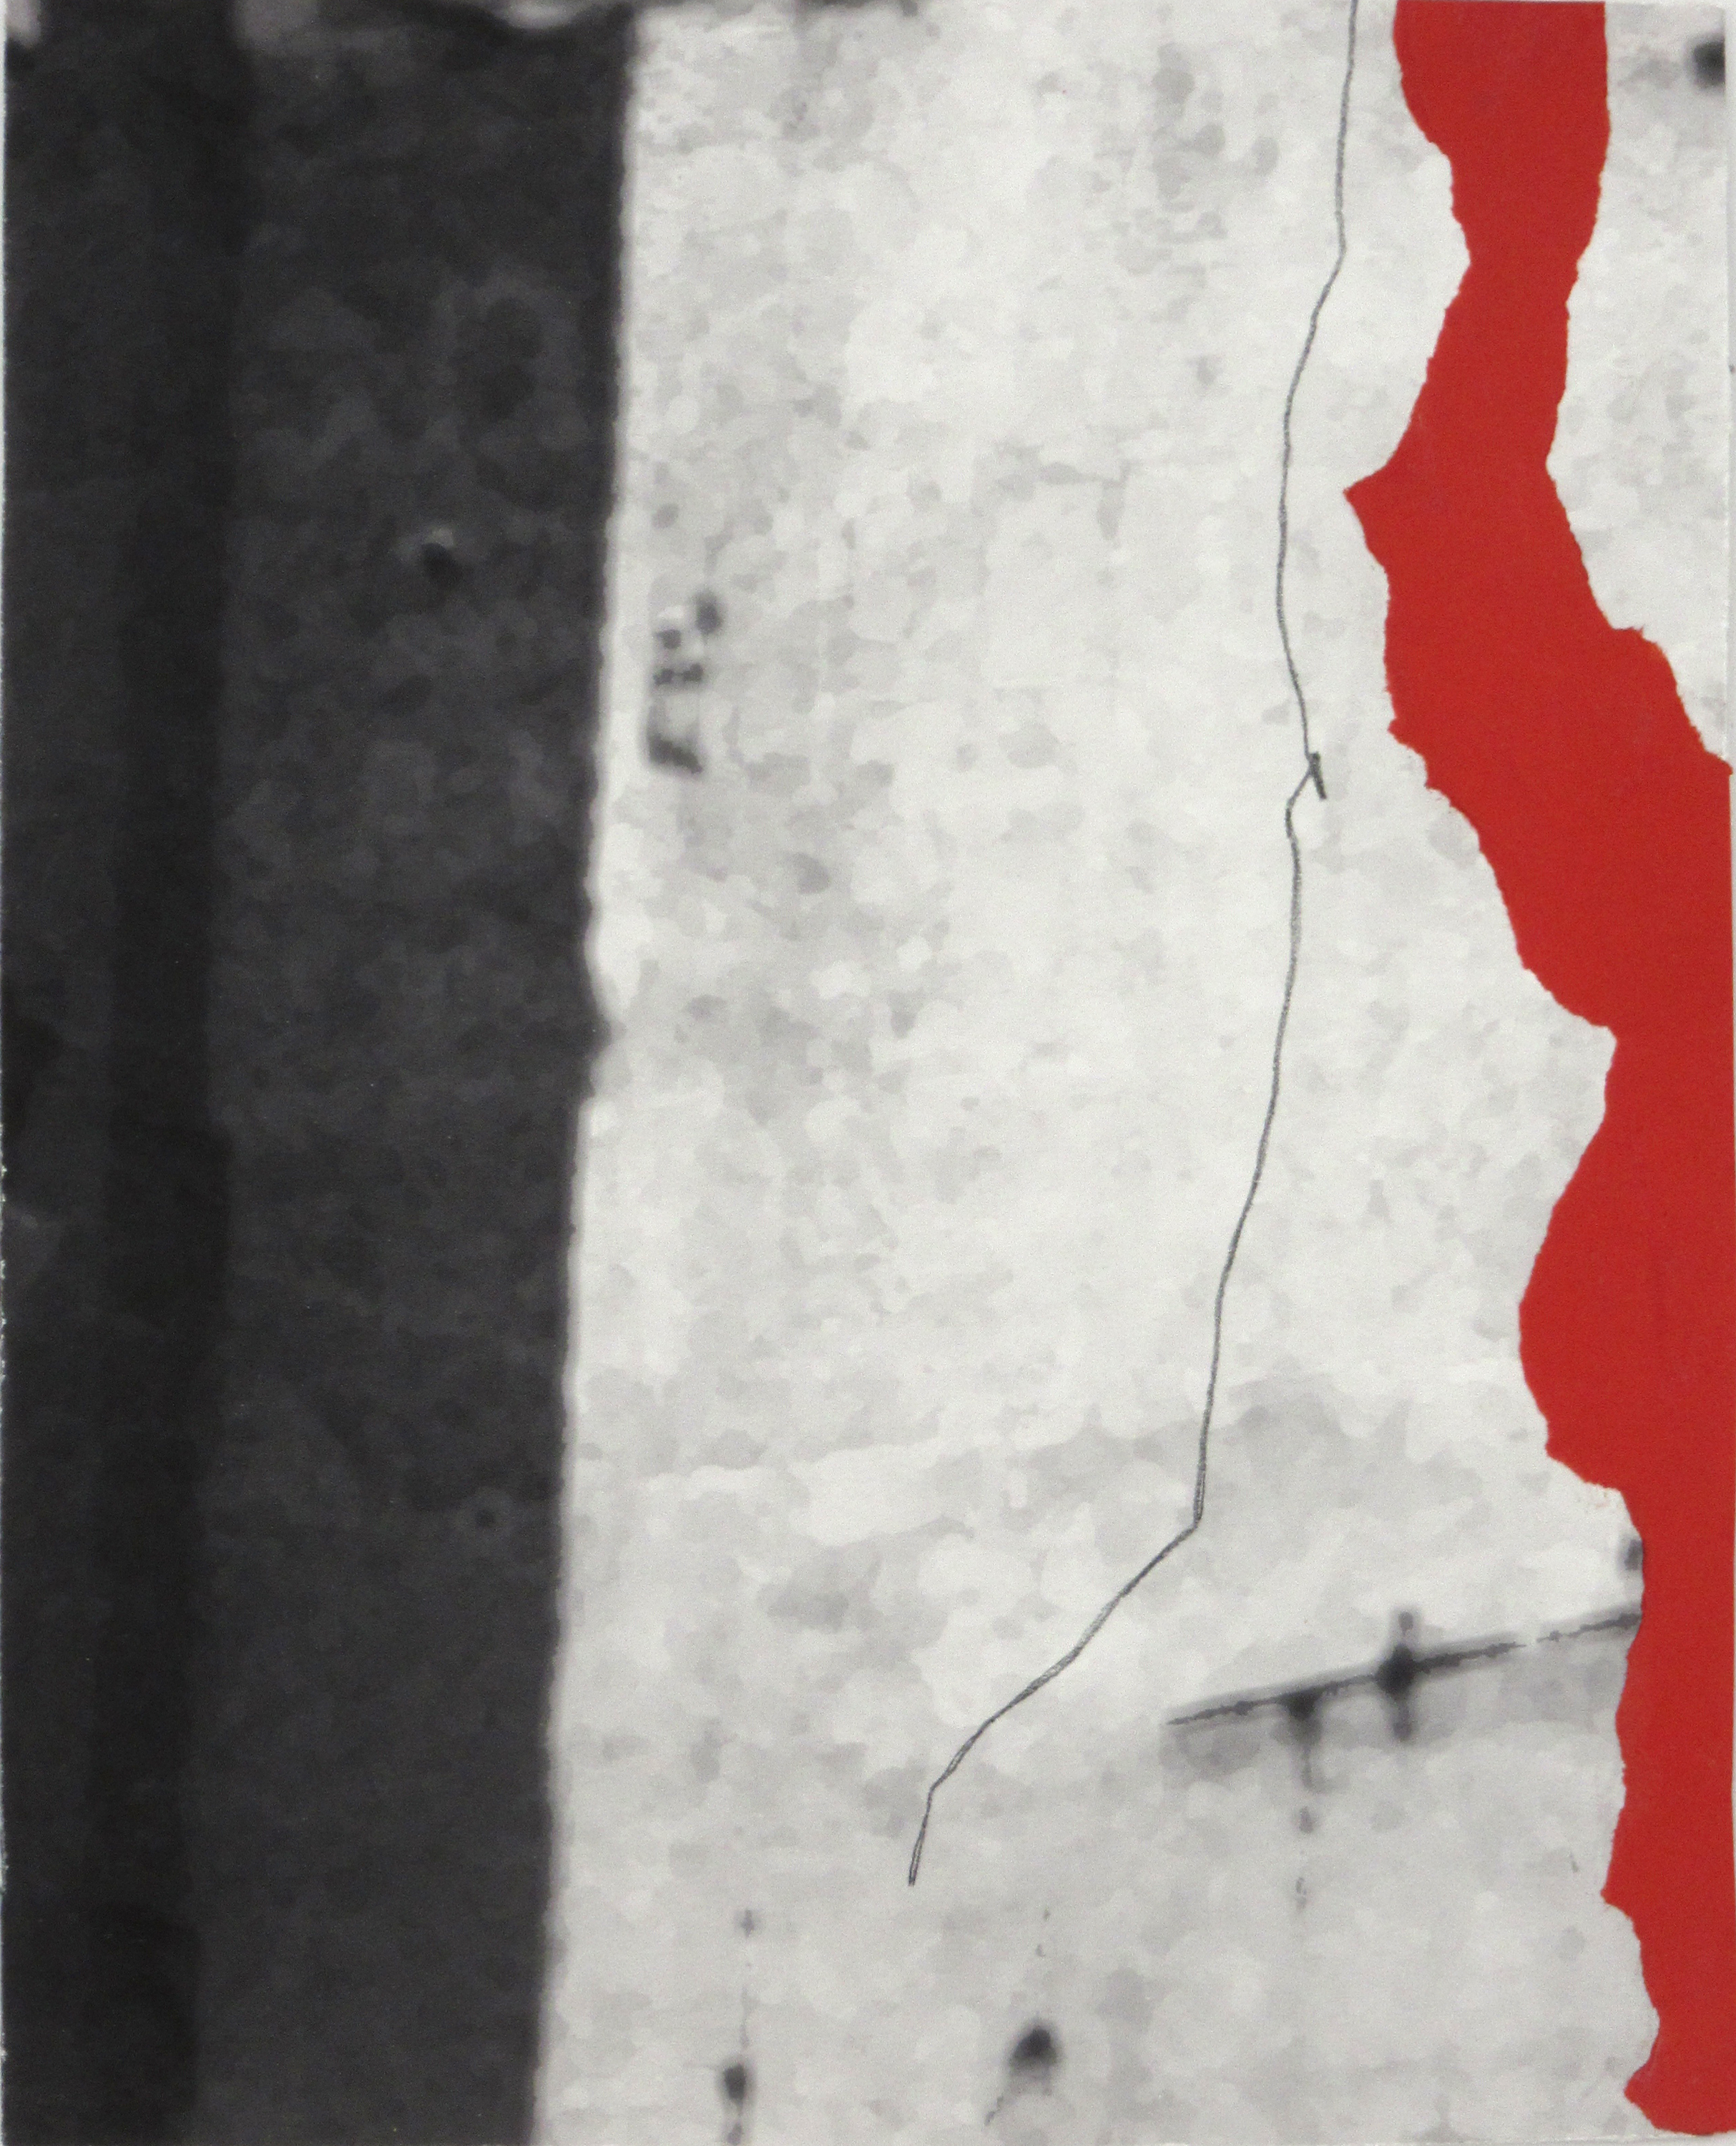 NYC Photo with Red Form and Line, 2014, original photograph, paper, pencil, 10 x 8 in, $400